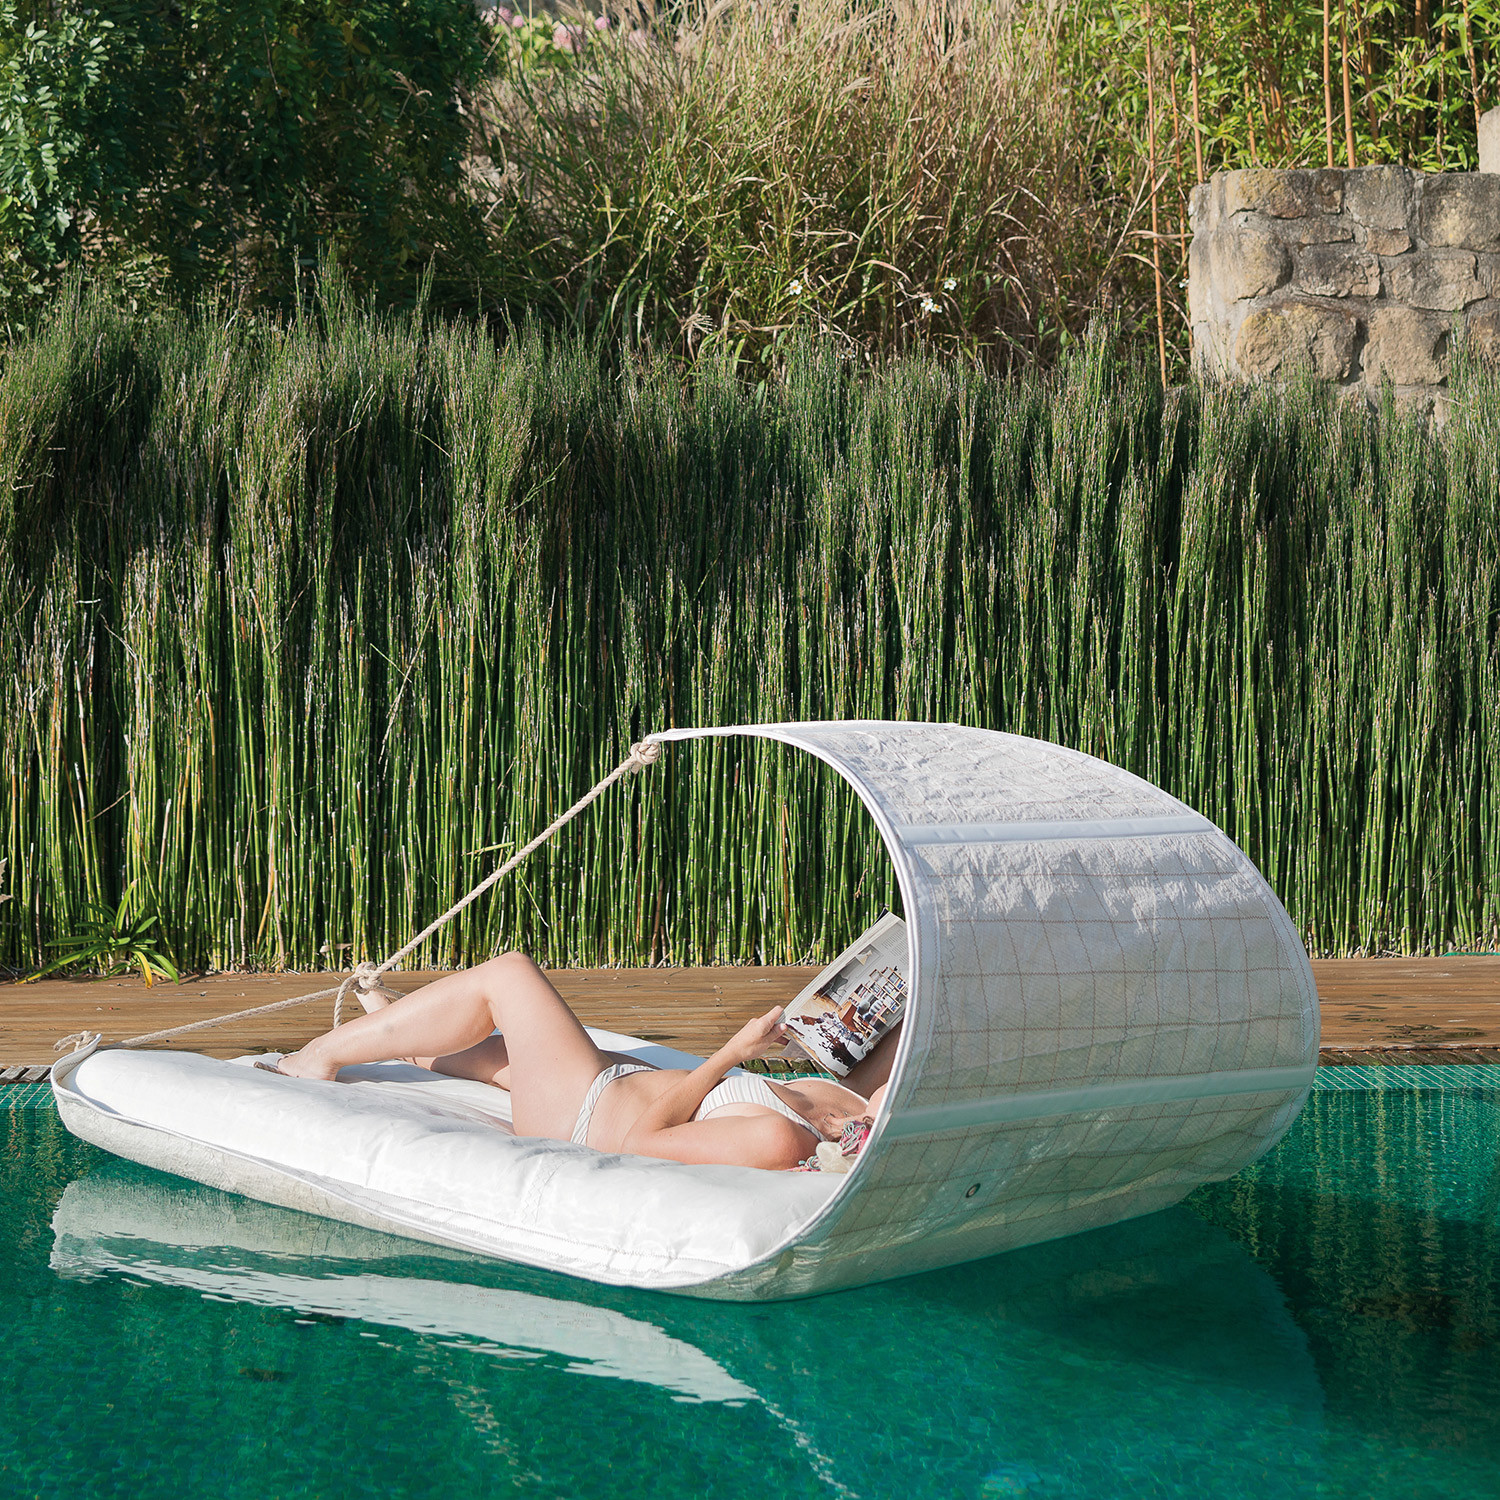 Vaurien Floating Lounger By Dvelas